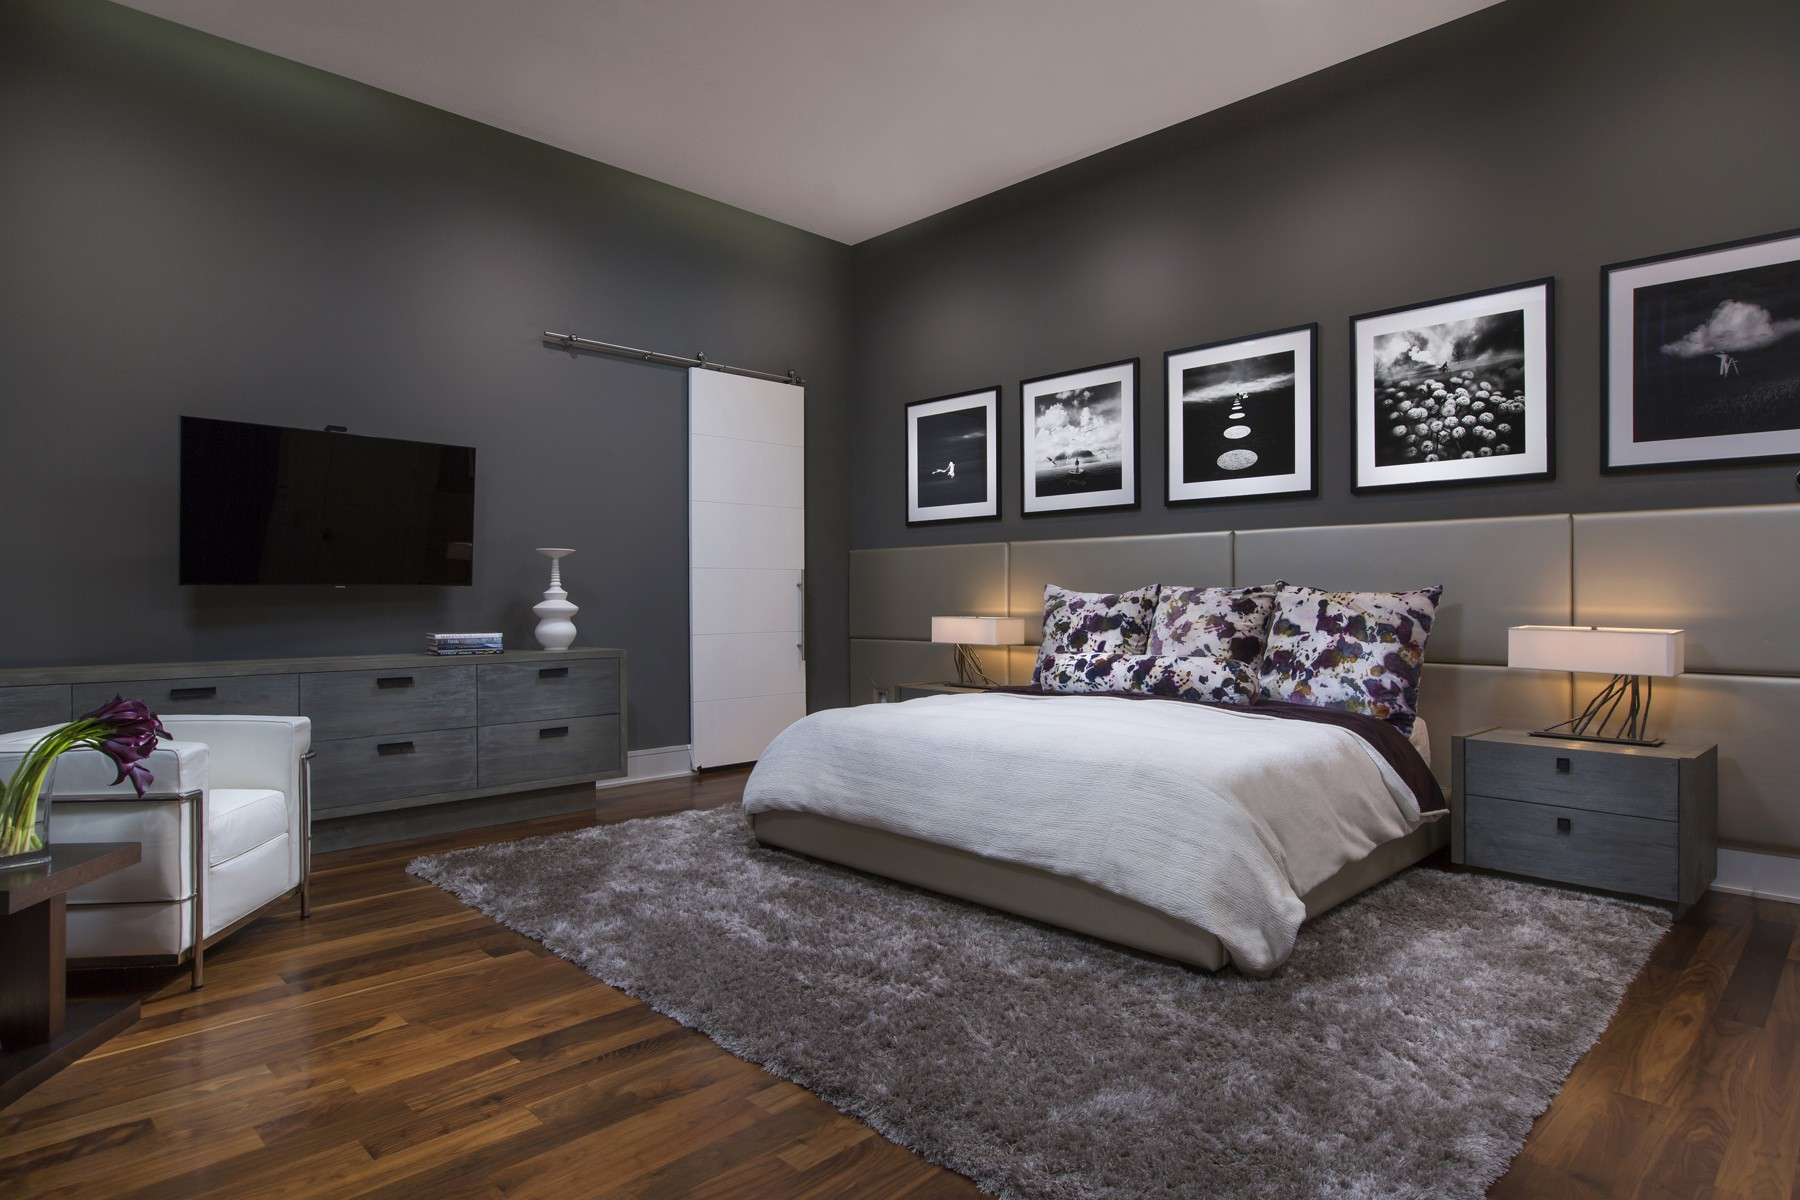 Modena custom residence phil kean design group Best bedroom paint colors 2018